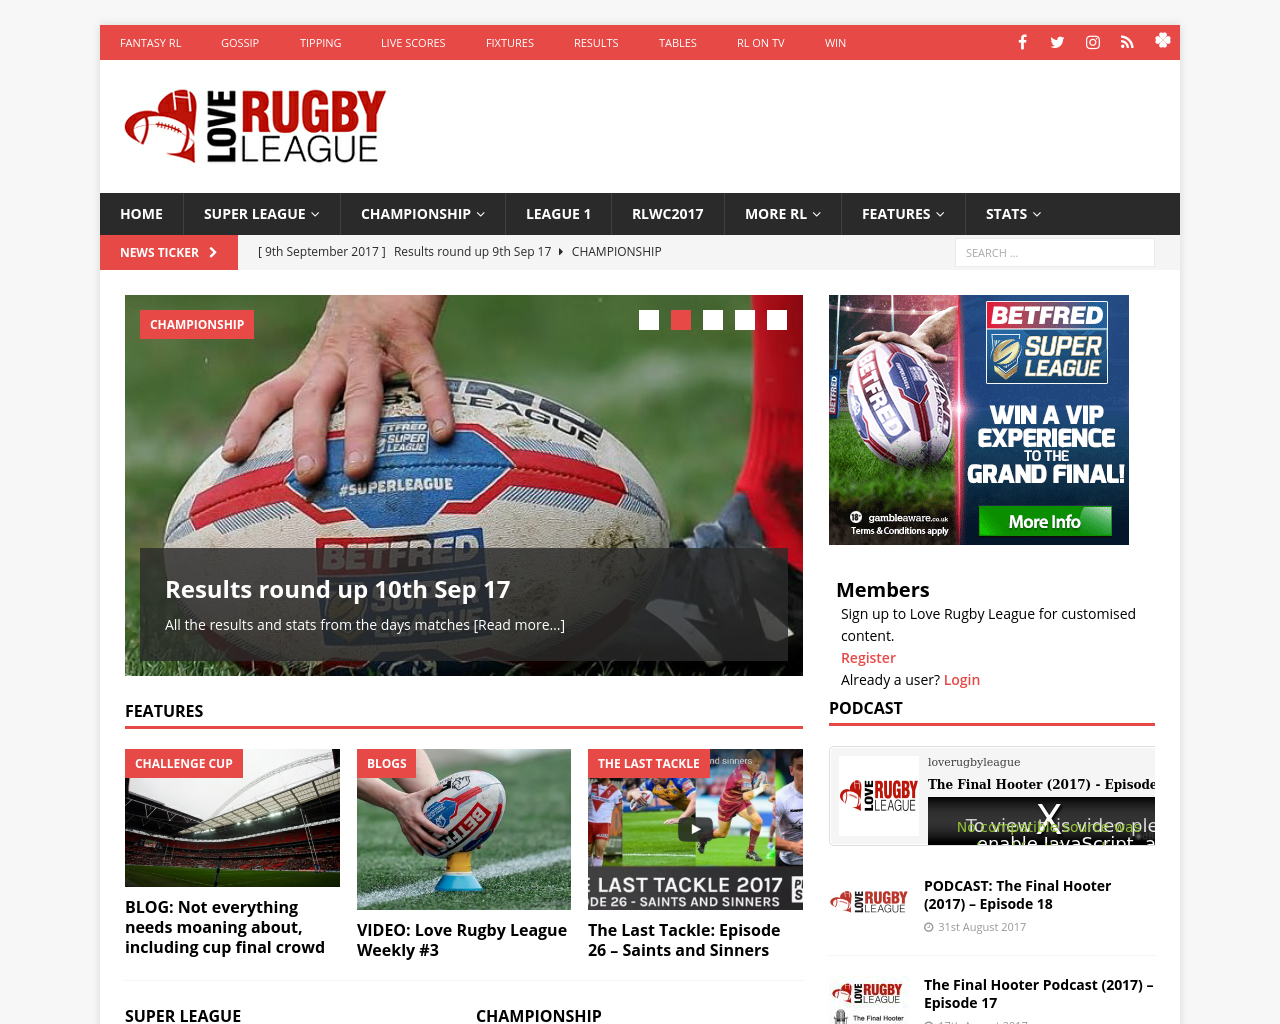 Love-Rugby-League-Advertising-Reviews-Pricing